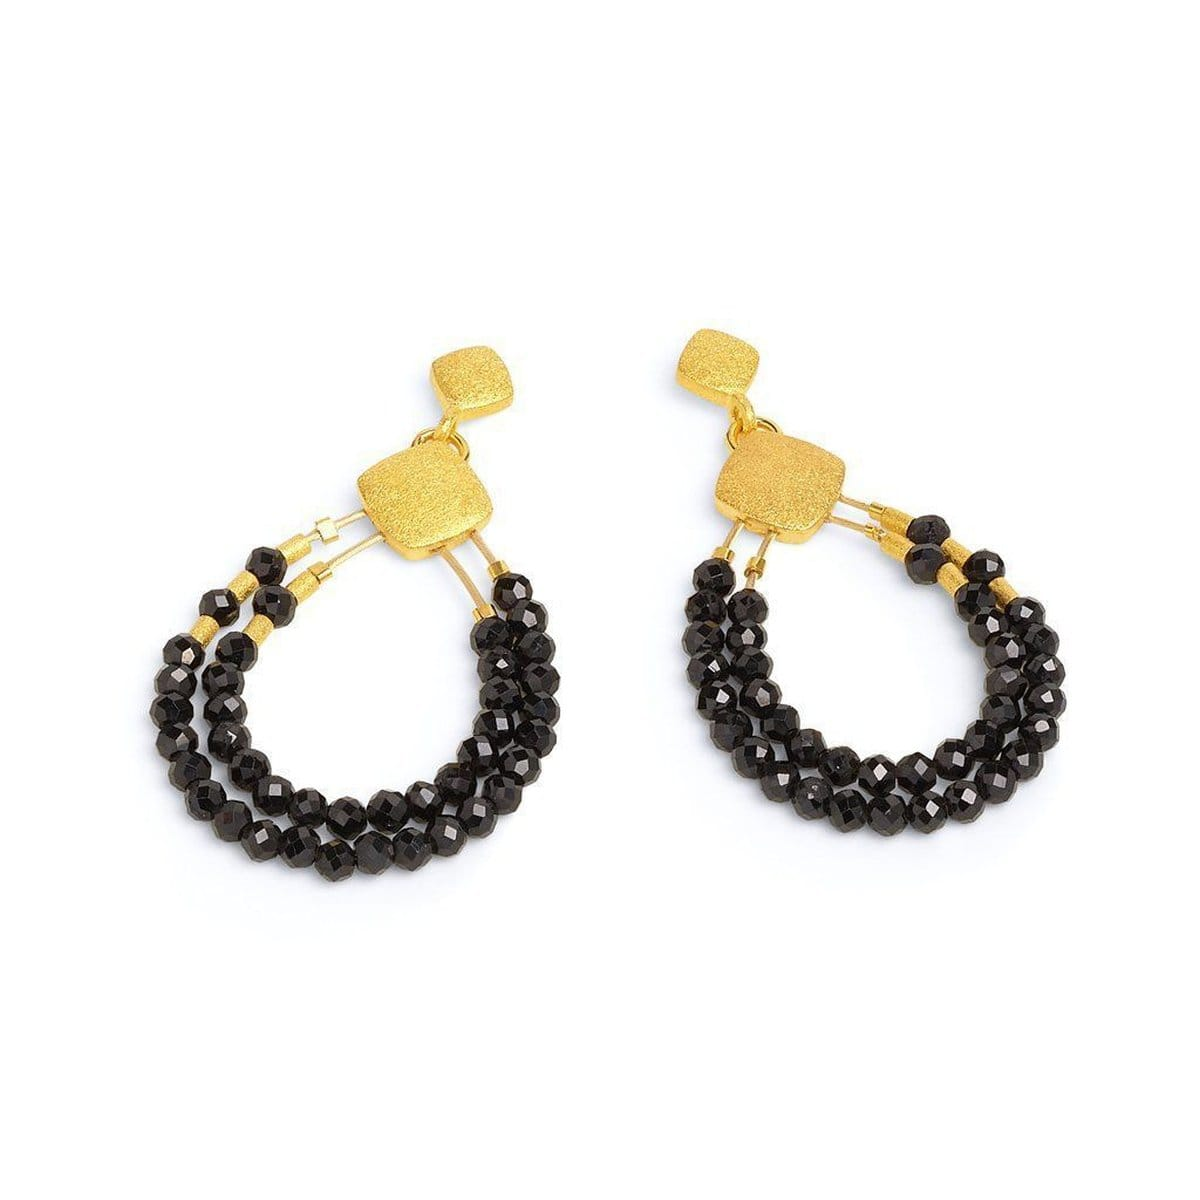 Clini Black Spinel Earrings - 15576496-Bernd Wolf-Renee Taylor Gallery